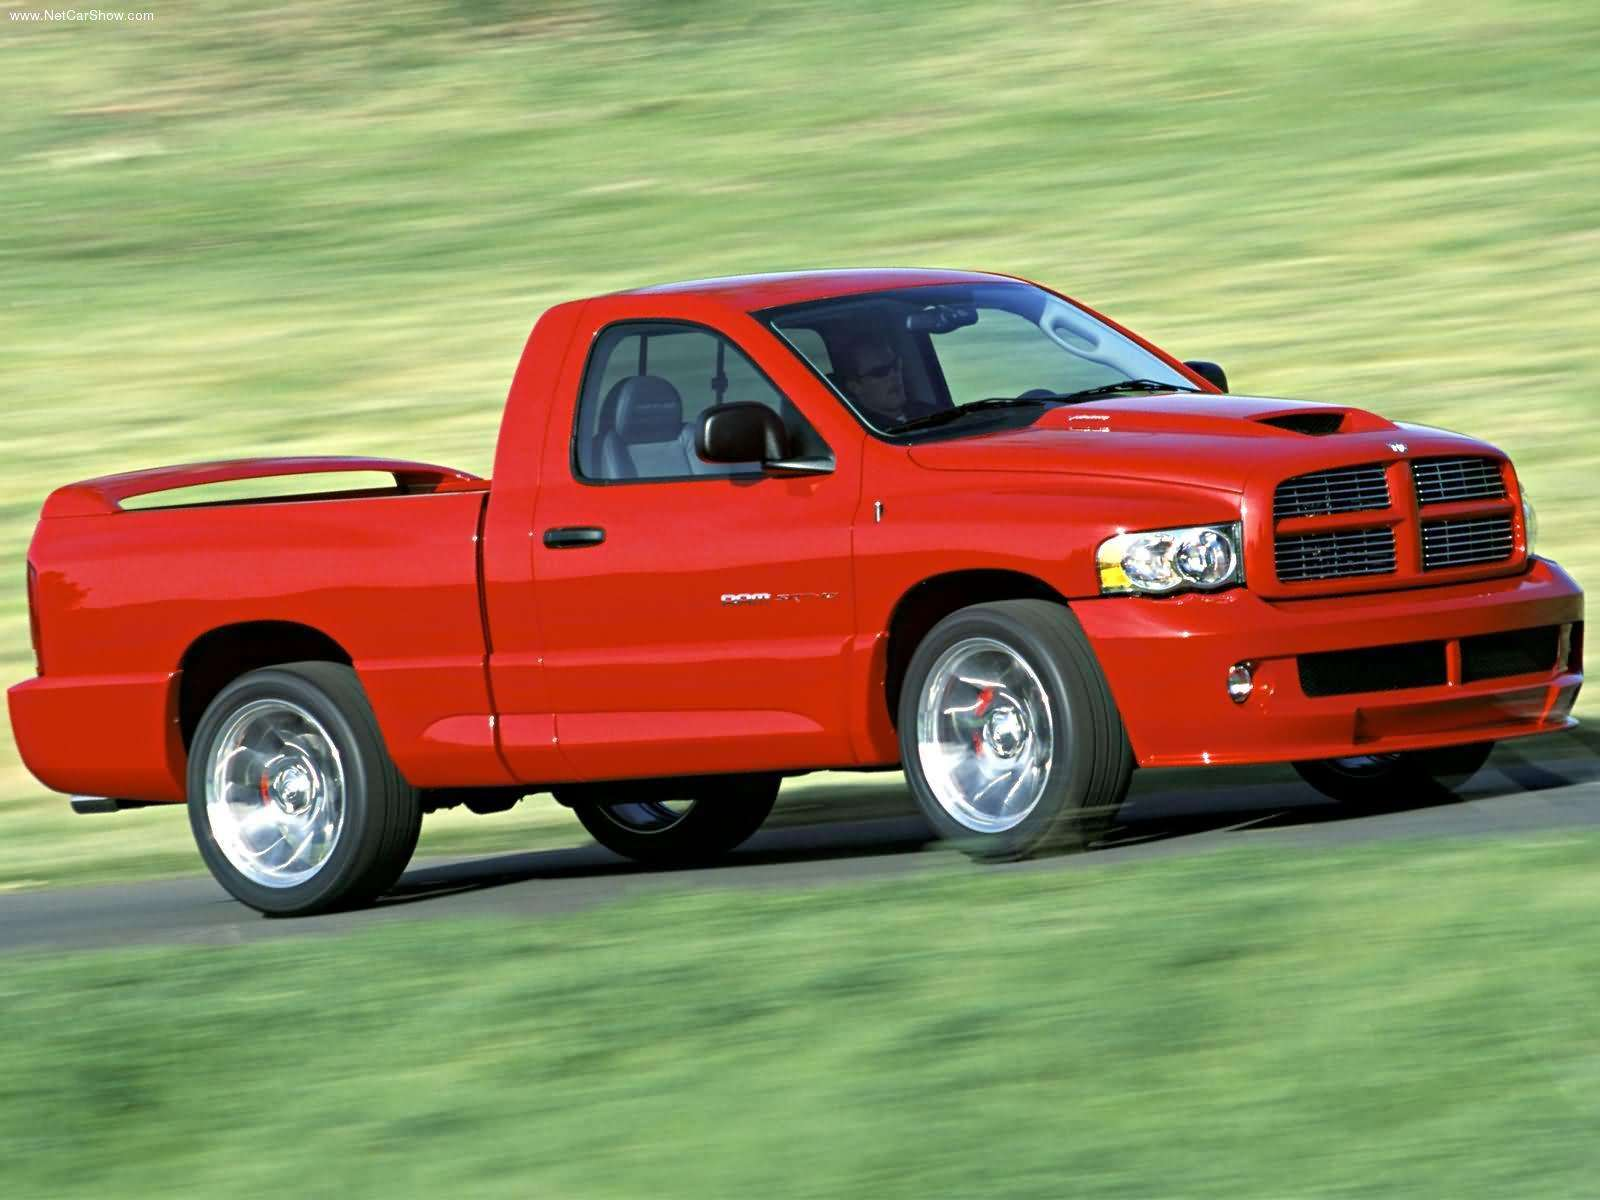 Dodge Ram SRT-10 Pickup 2006